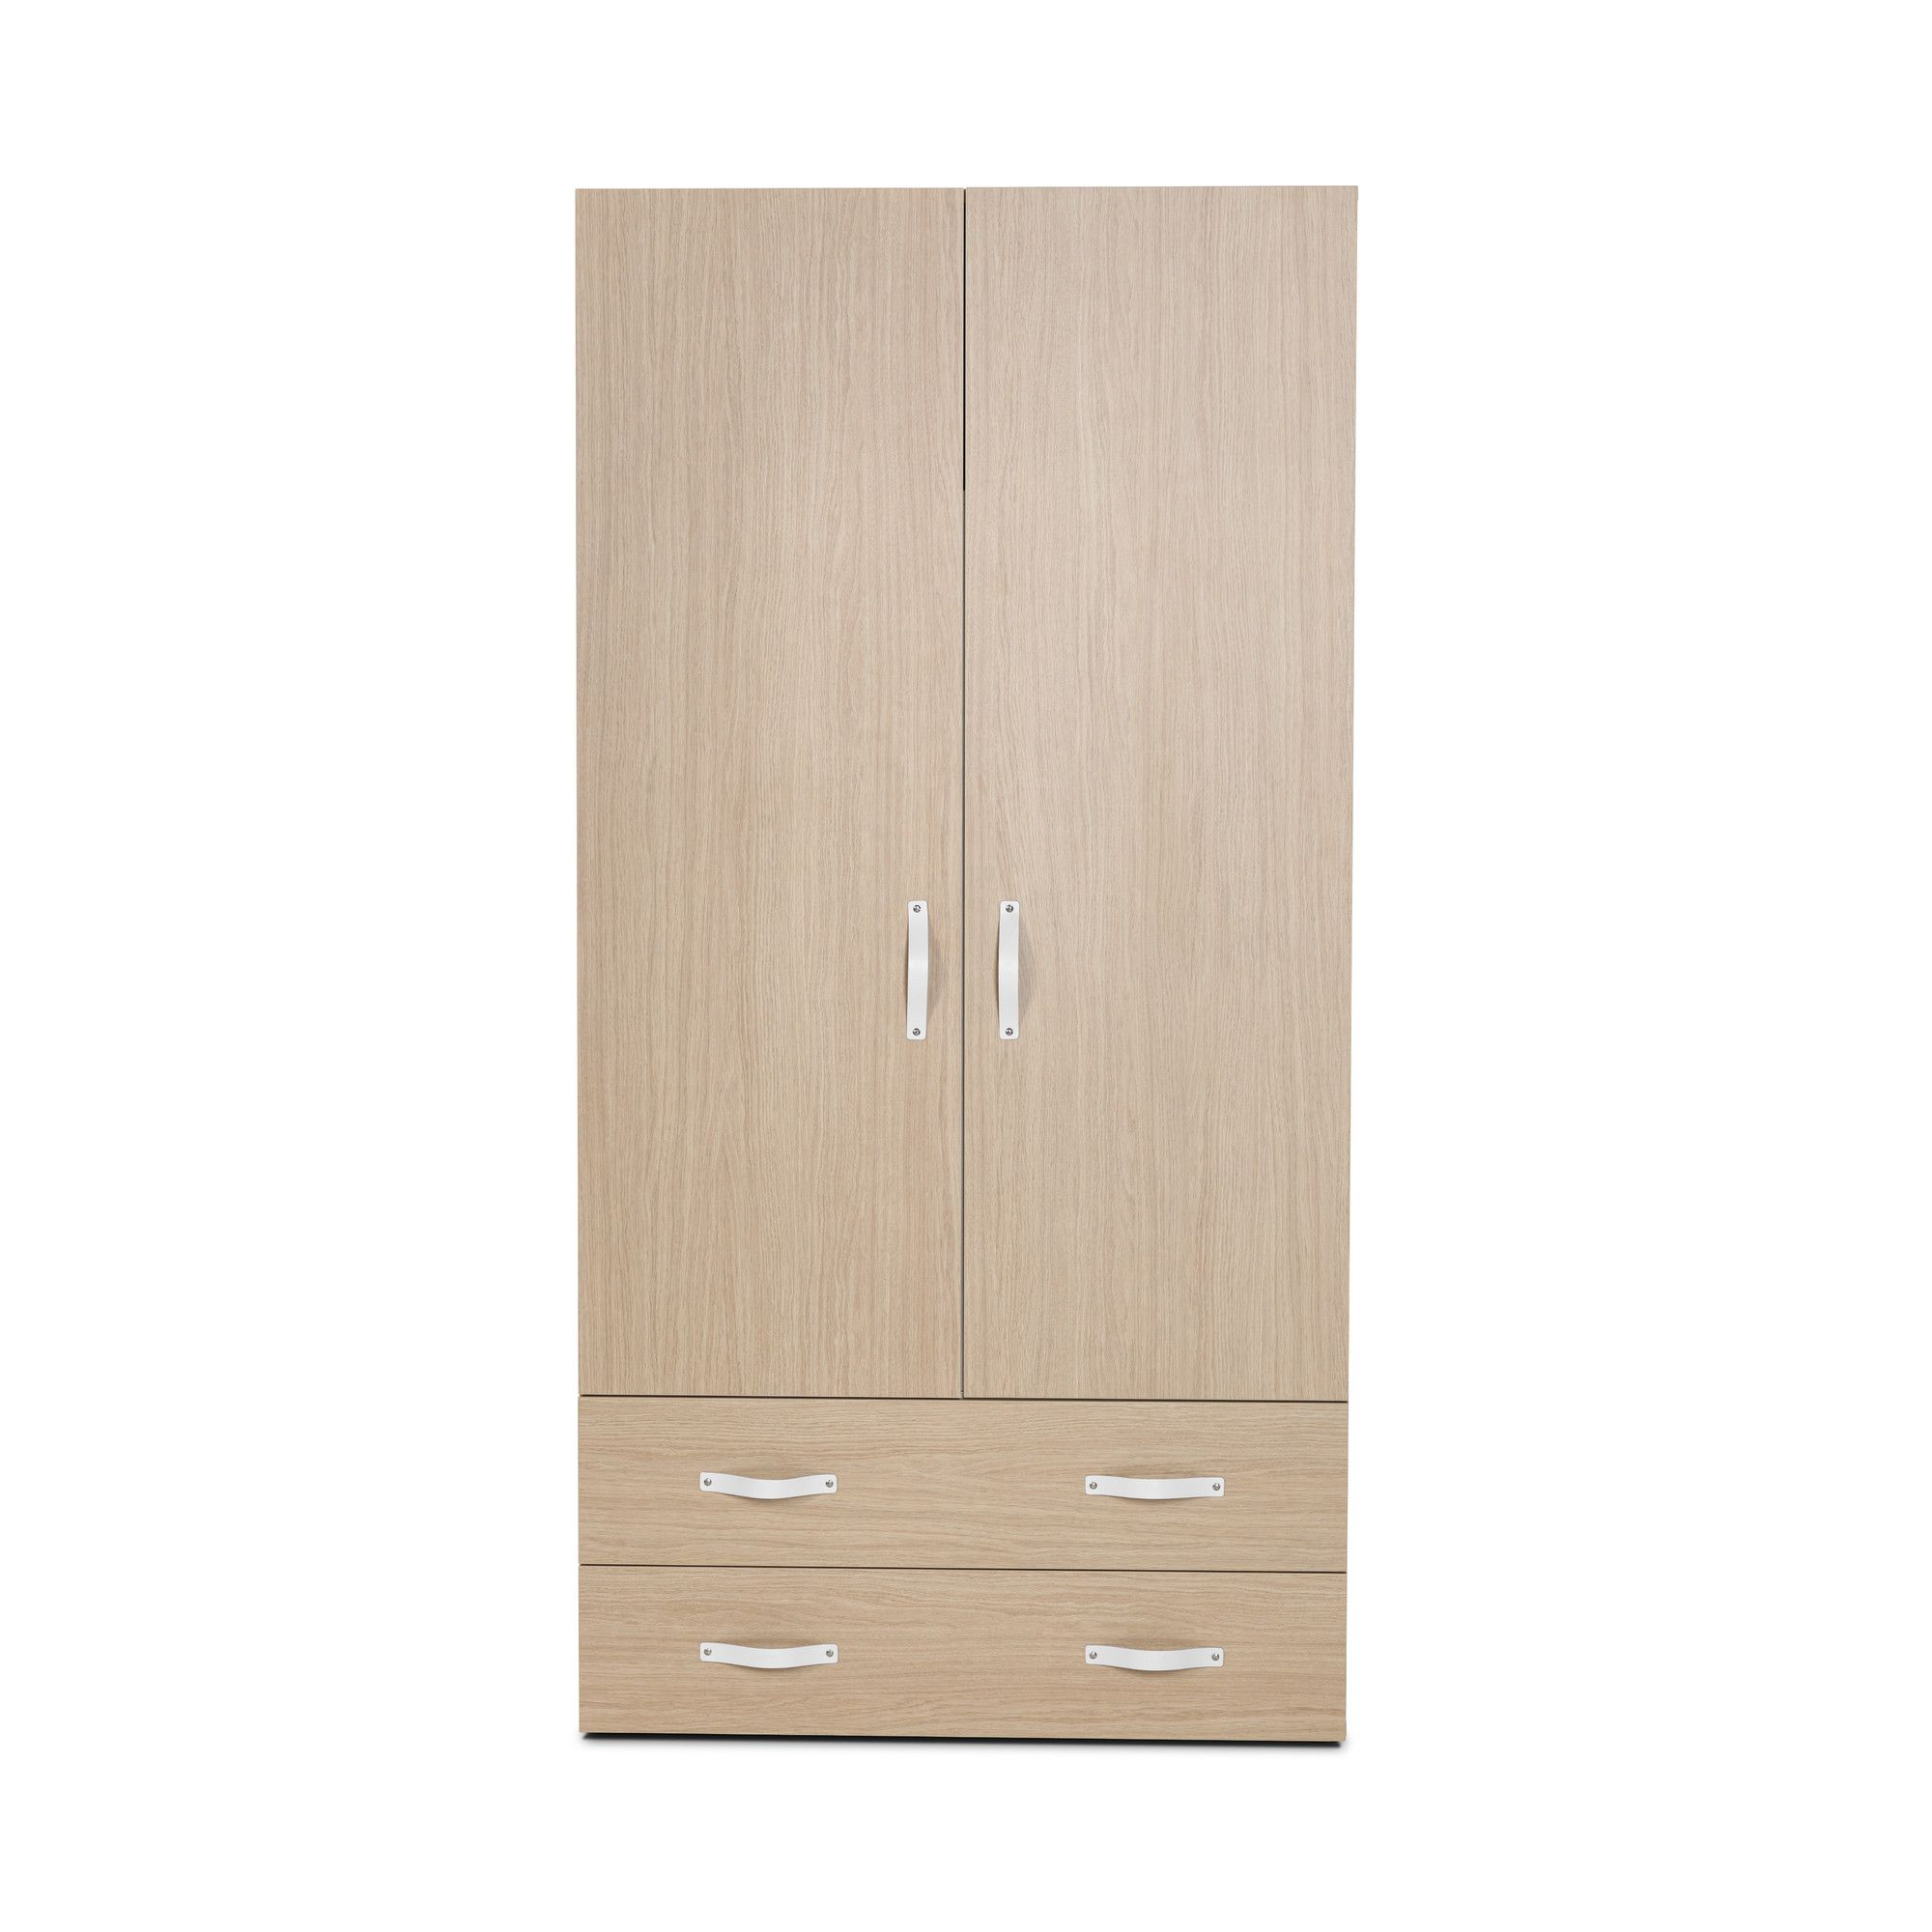 Didit Two-Drawer Wardrobe - Essential Oak Light at Tesco Direct